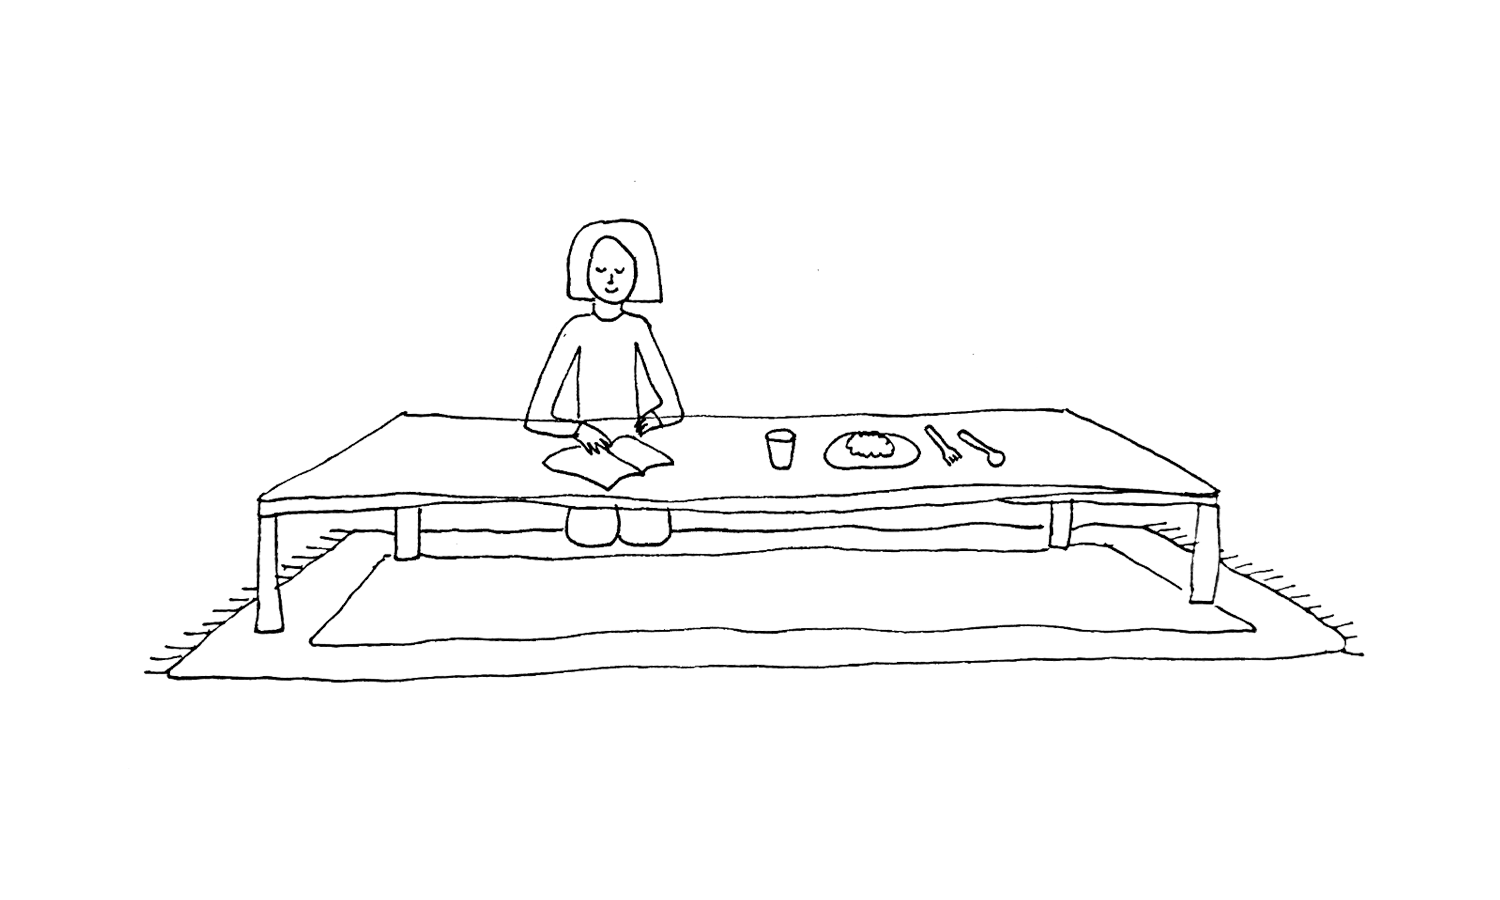 Another illustration of floor mats: the author reads a book while sitting on a mat near a low-level Japanese table.